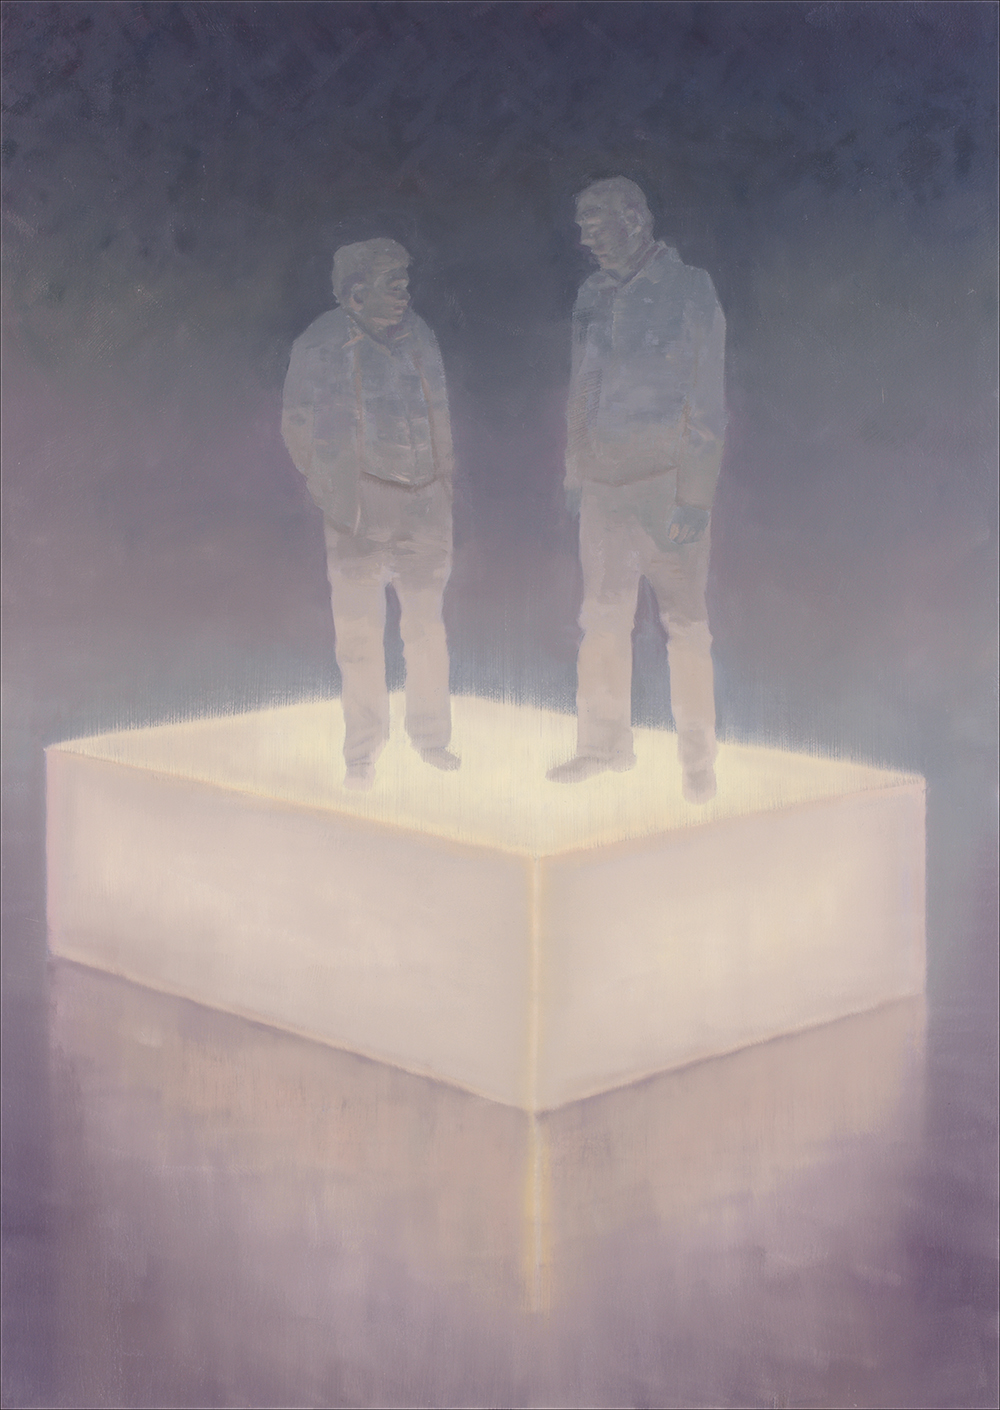 two figures standing on a lightbox o,c. 140x100cm. 2008